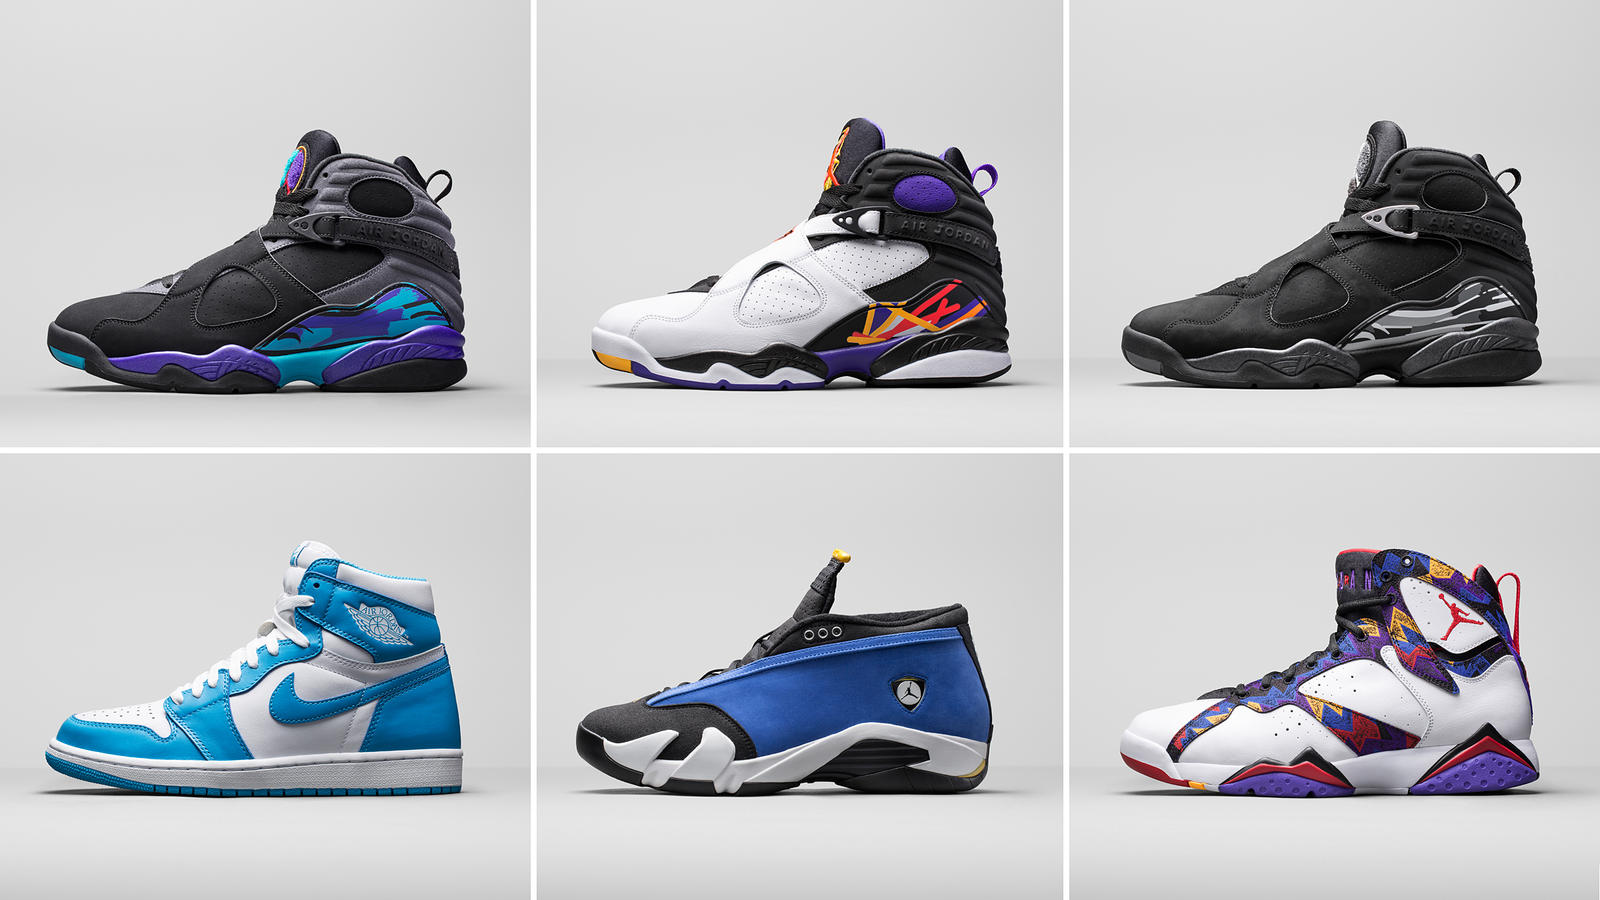 5e5cd3dc28bc02 Jordan Brand Previews the Holiday 2015 Retro Lineup - Nike News